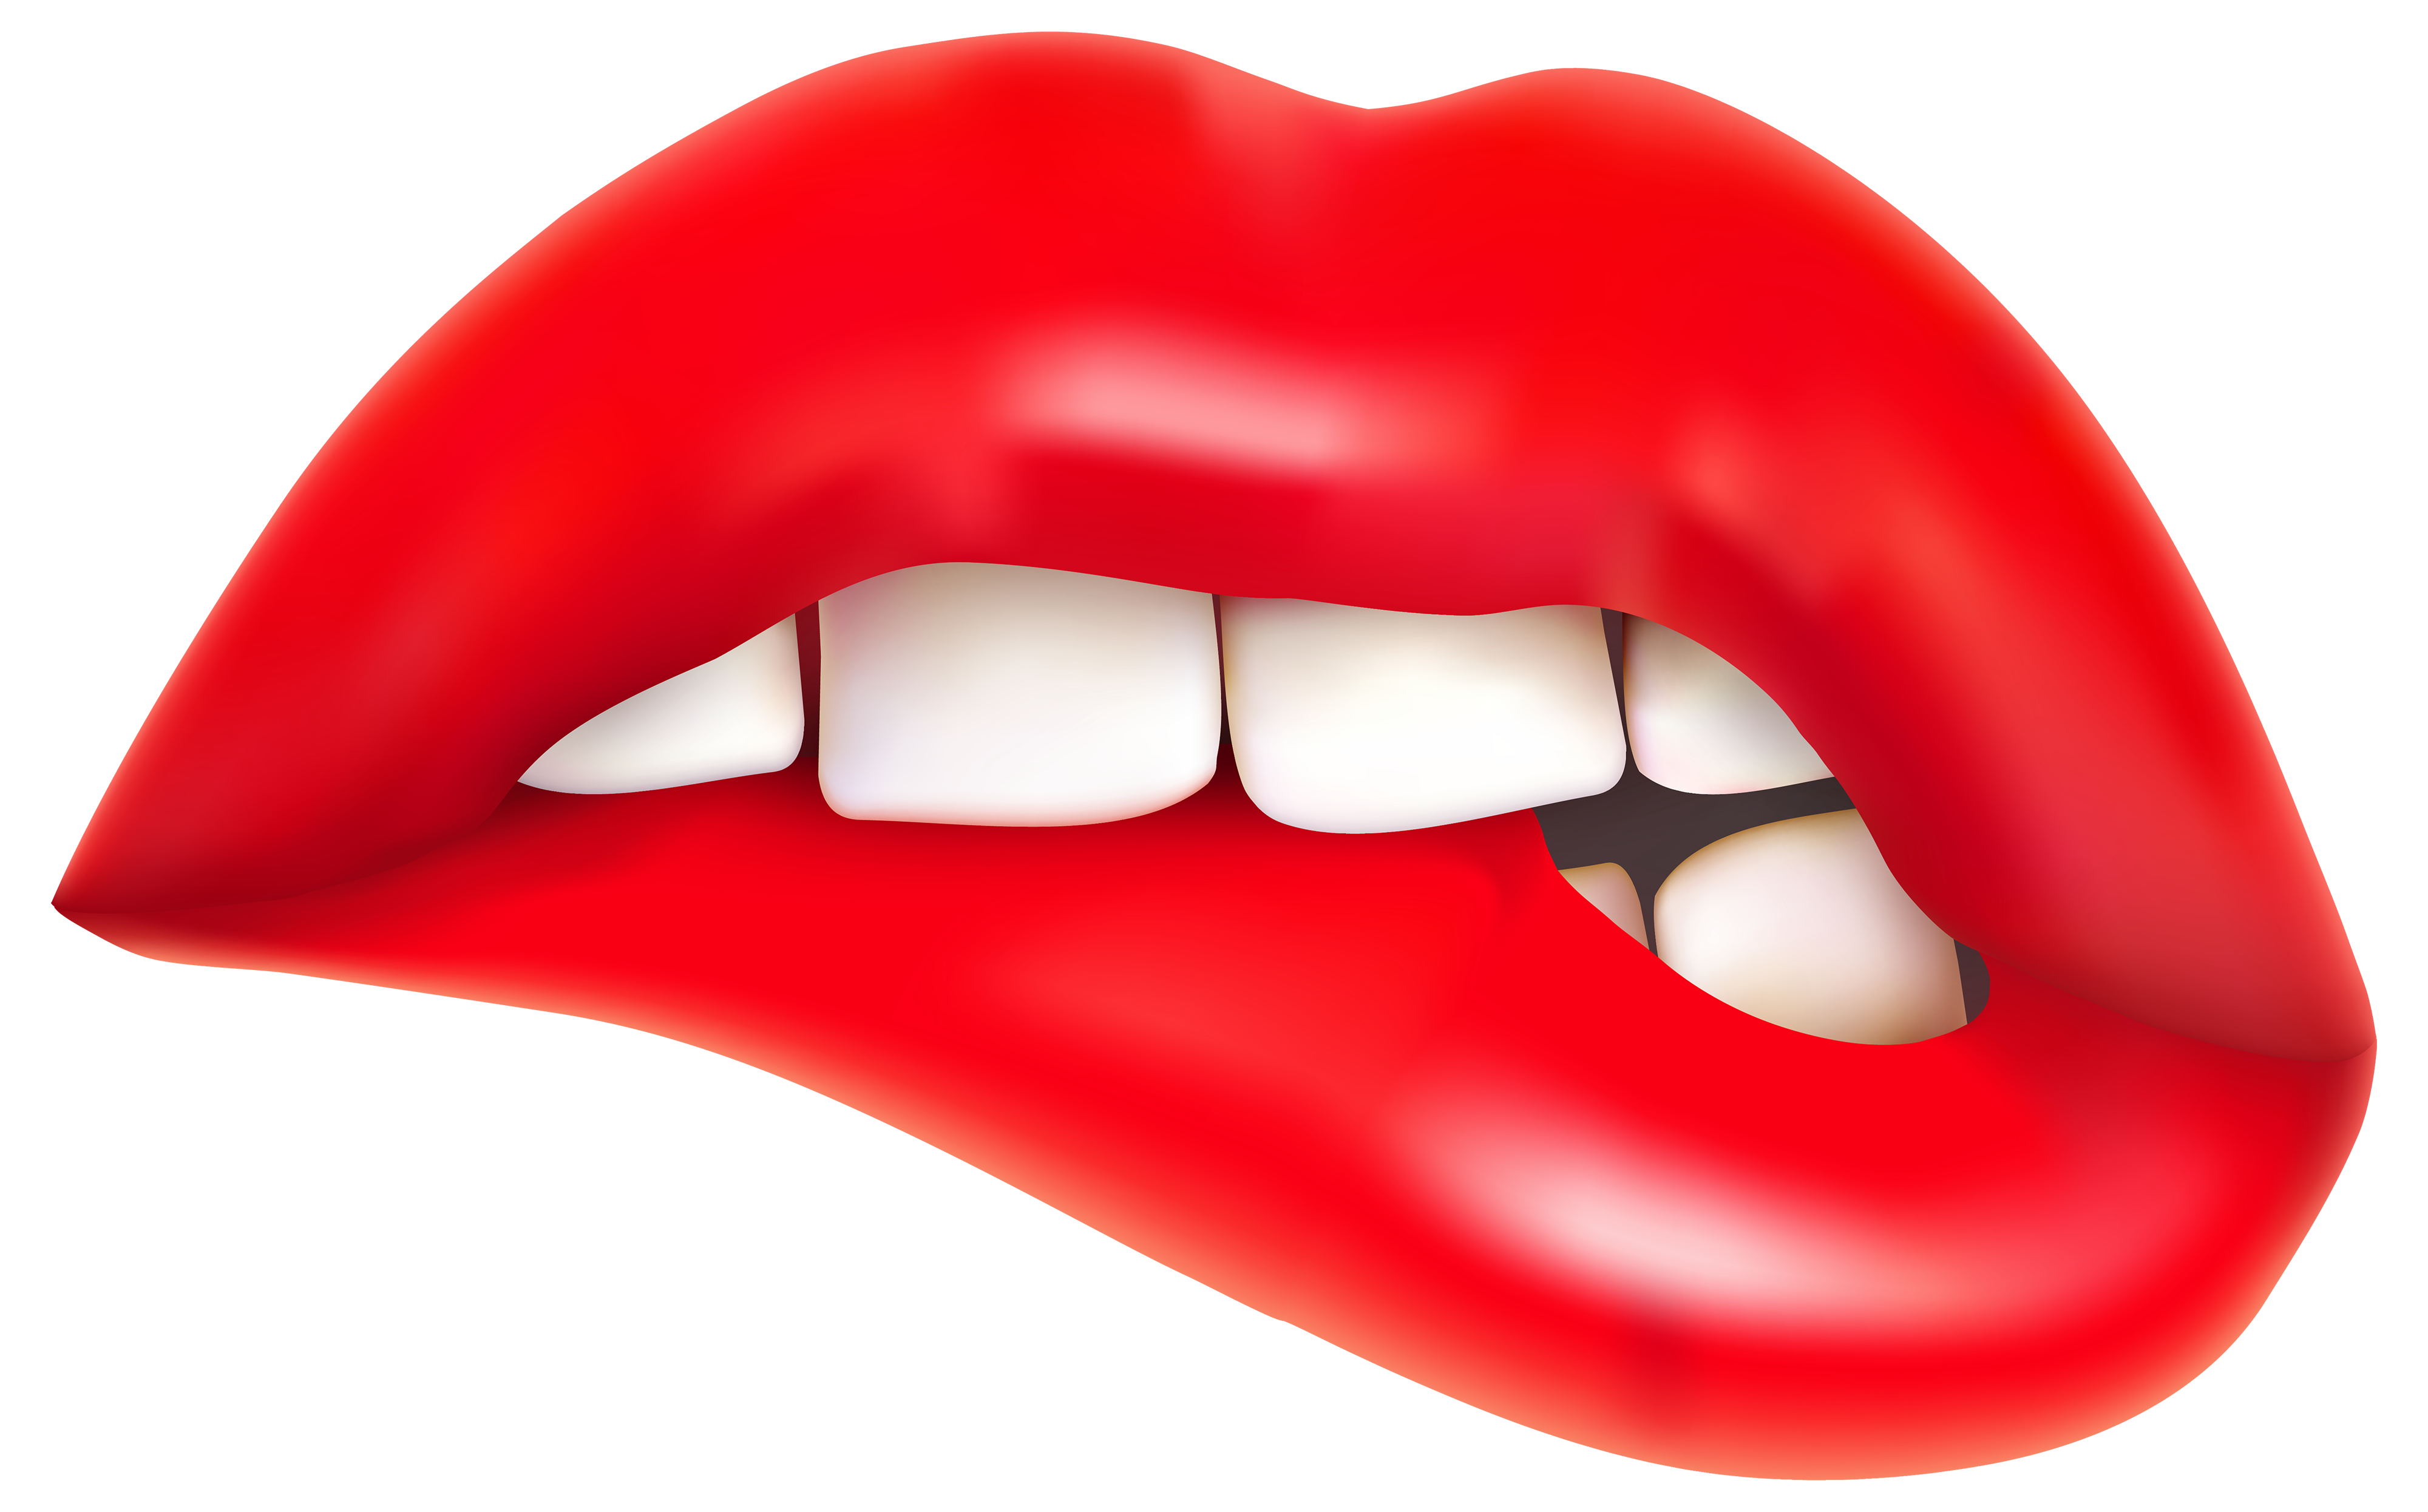 lips clipart at getdrawings com free for personal use lips clipart rh getdrawings com lip clip art black and white lip clipart png